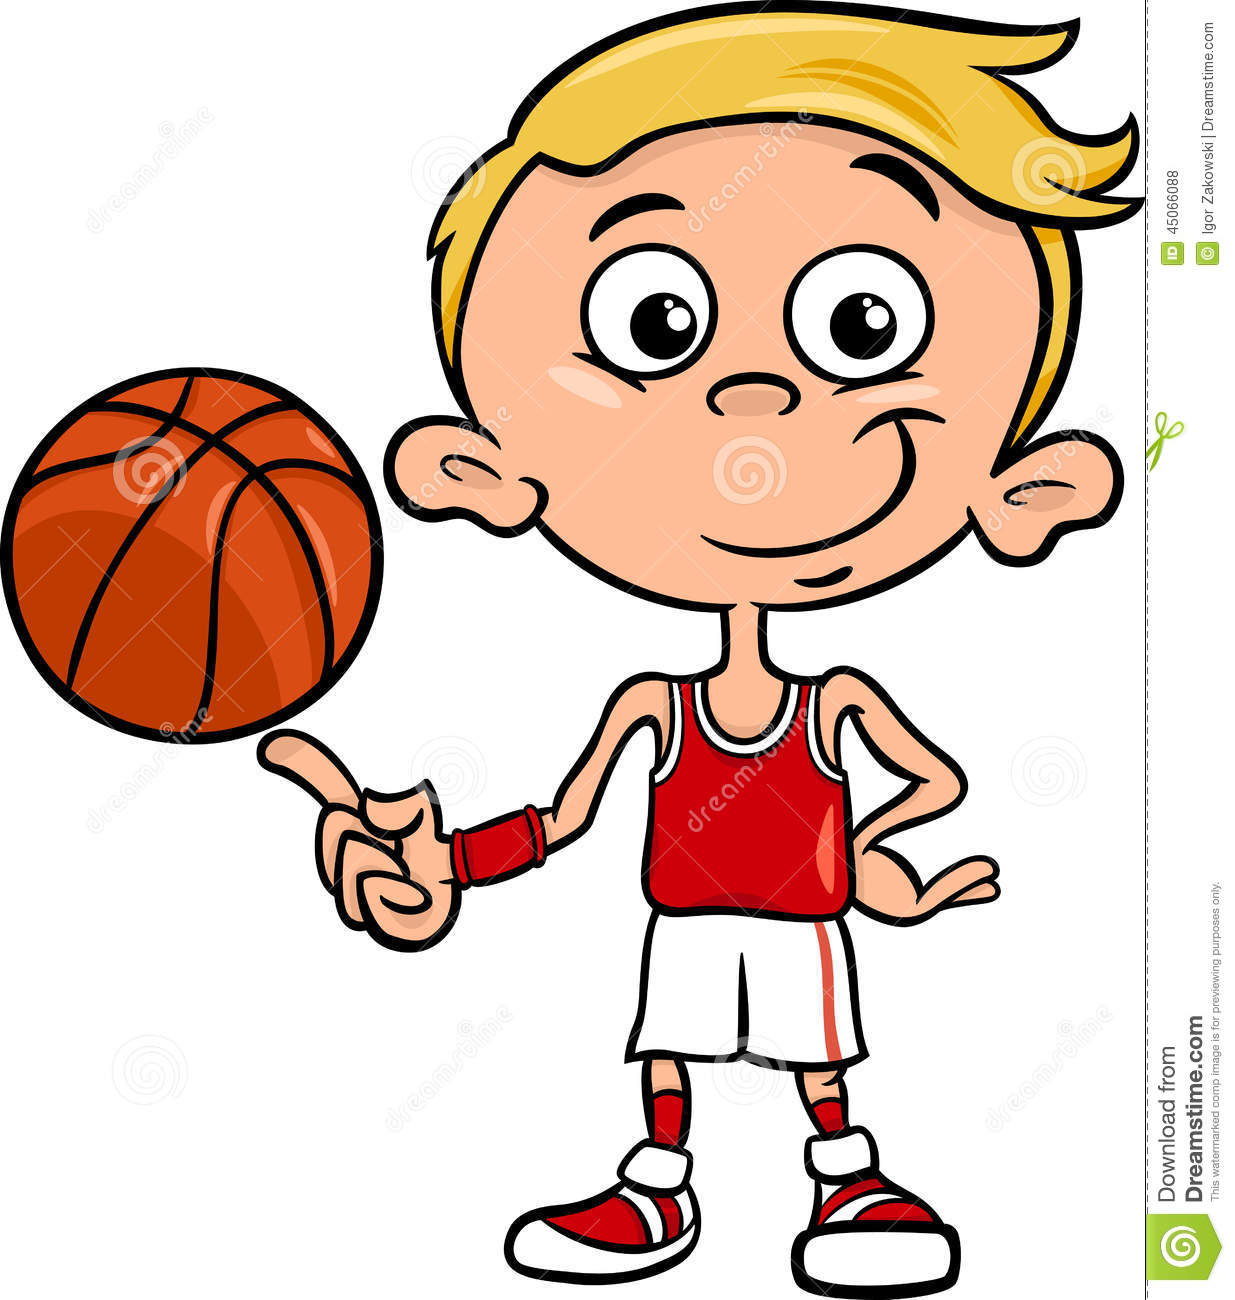 Cartoon Characters Playing Basketball : Boy basketball player cartoon illustration stock vector